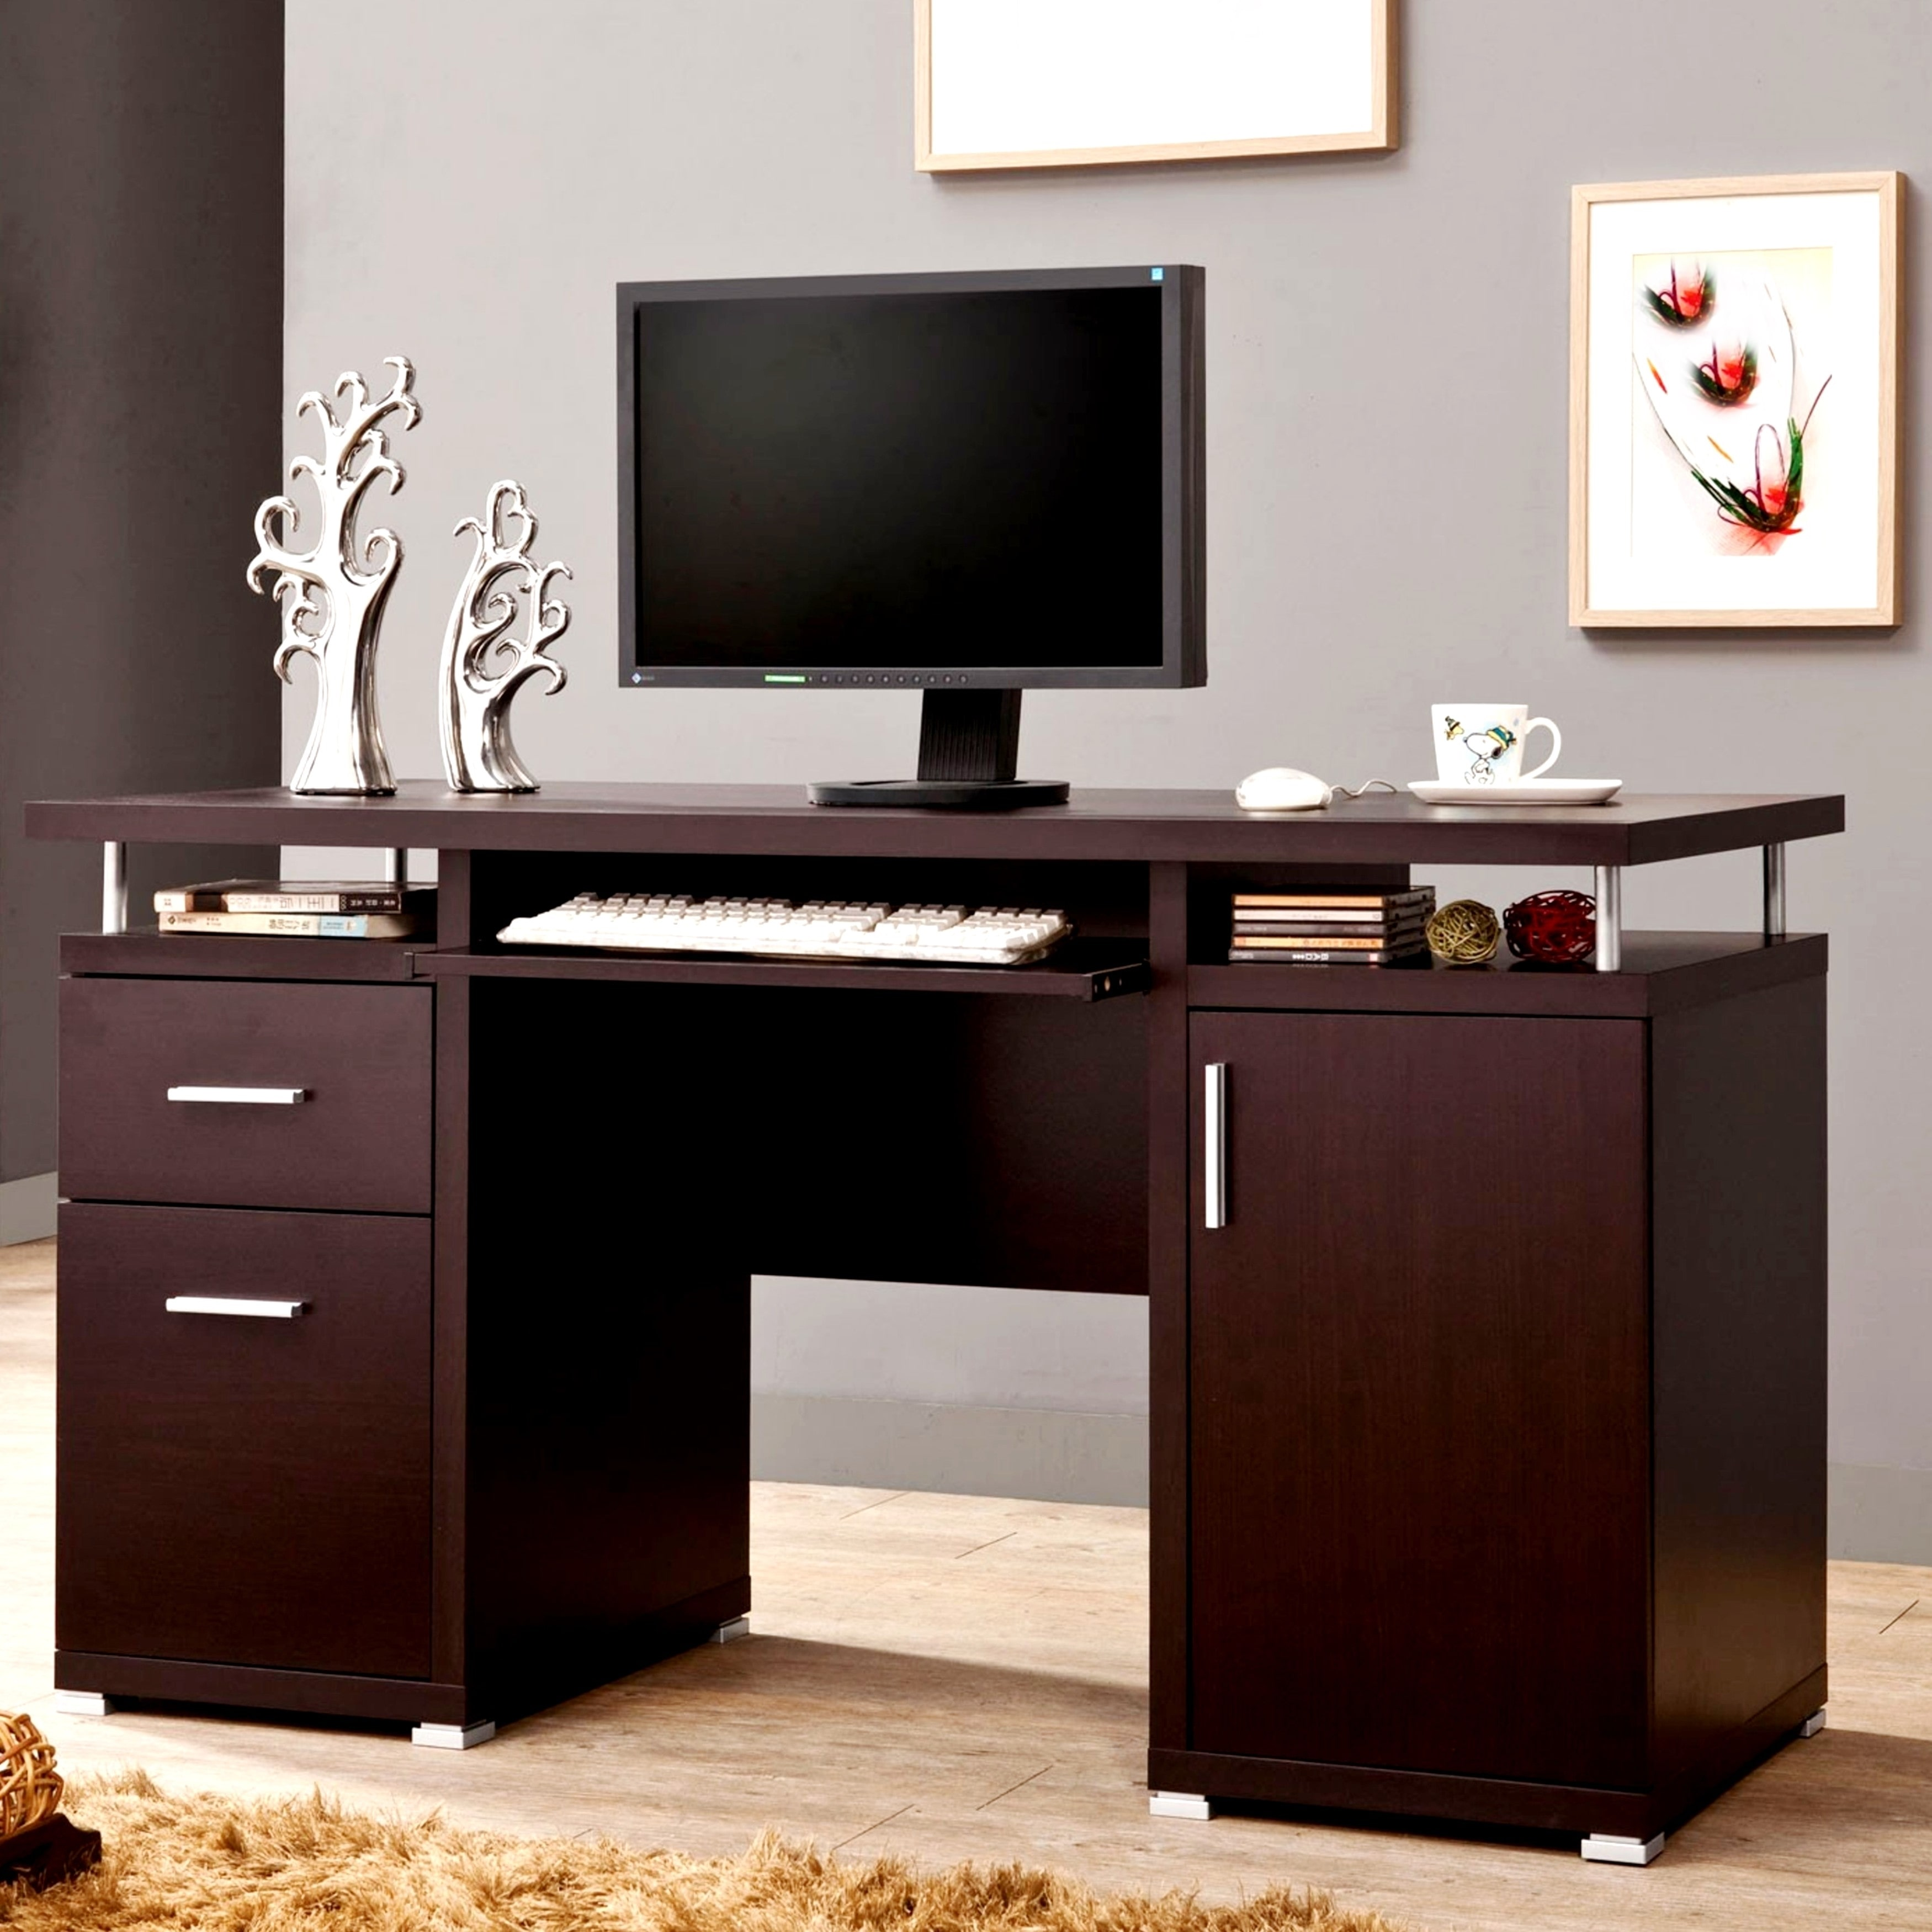 Furniture For A Best Home Office: A Line Furniture Modern Floating Top Design Home Office